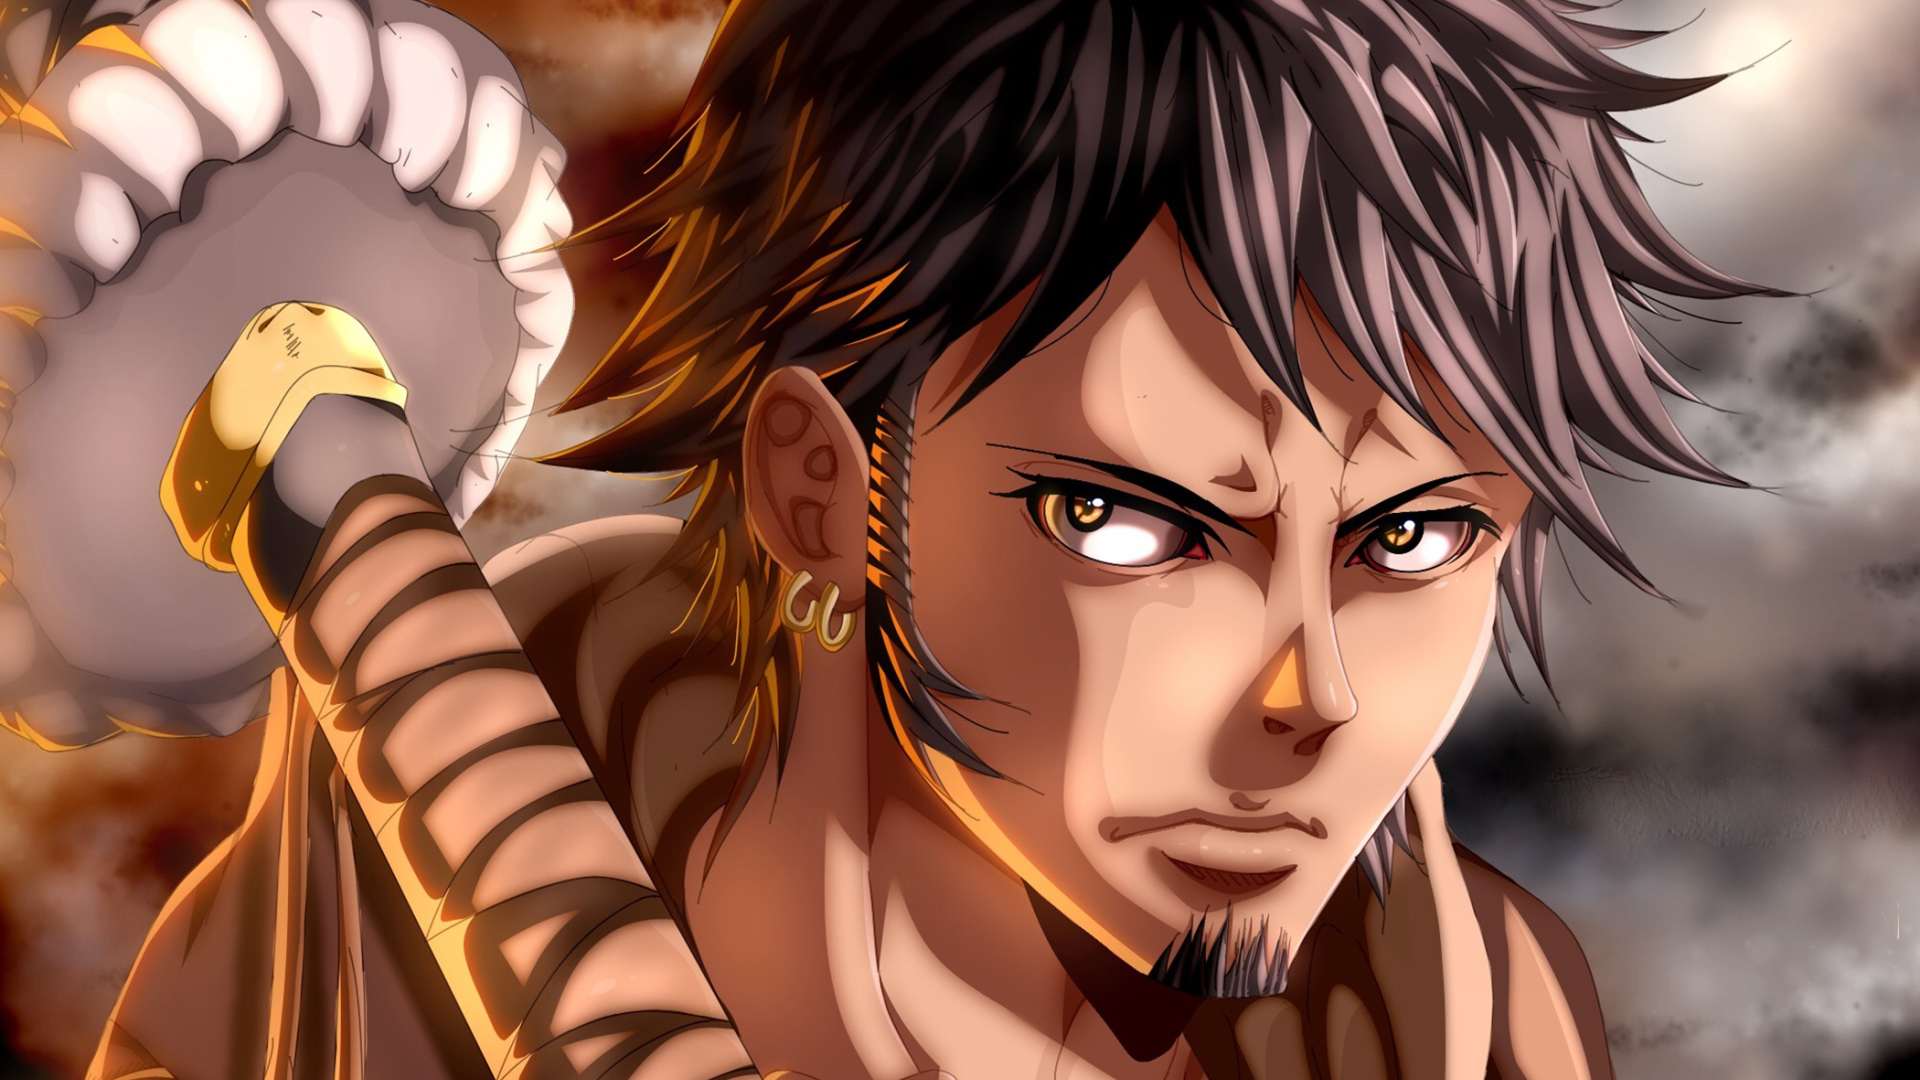 1920x1080 Trafalgar Law One Piece Anime 1080p Laptop Full Hd Wallpaper Hd Anime 4k Wallpapers Images Photos And Background